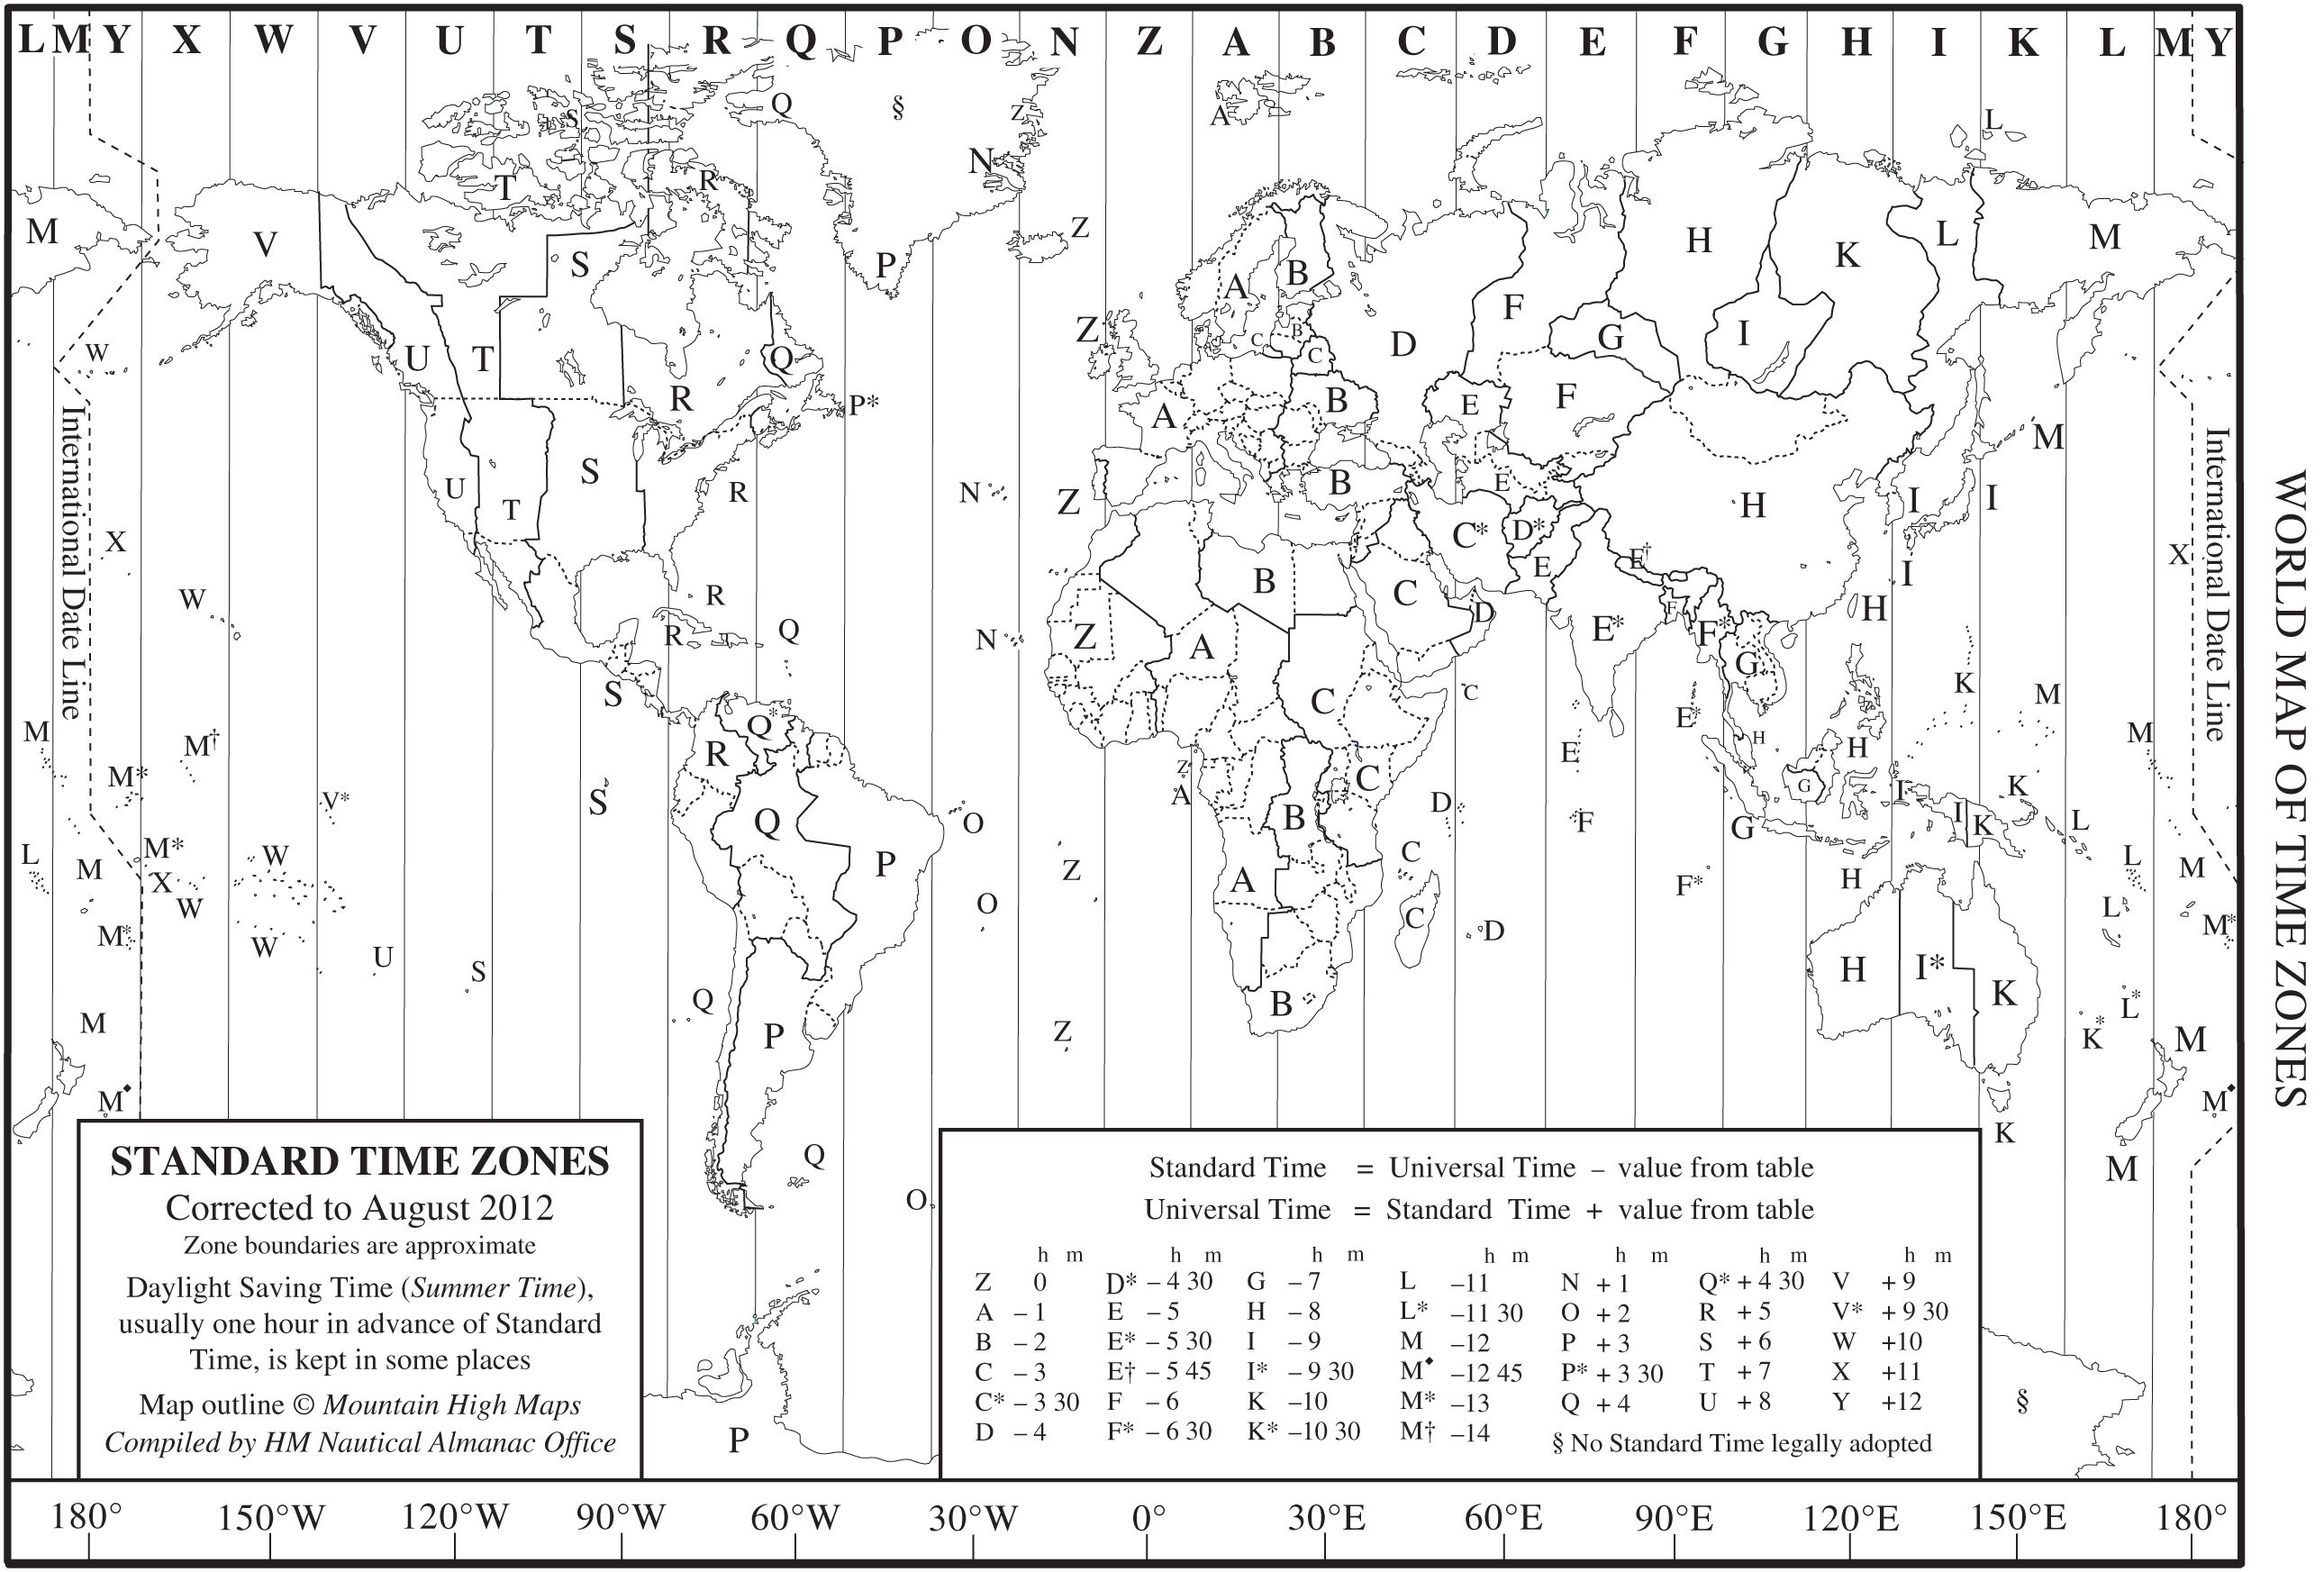 small resolution of http://aa.usno.navy.mil/graphics/TimeZoneMap0812.jpg   World time zones